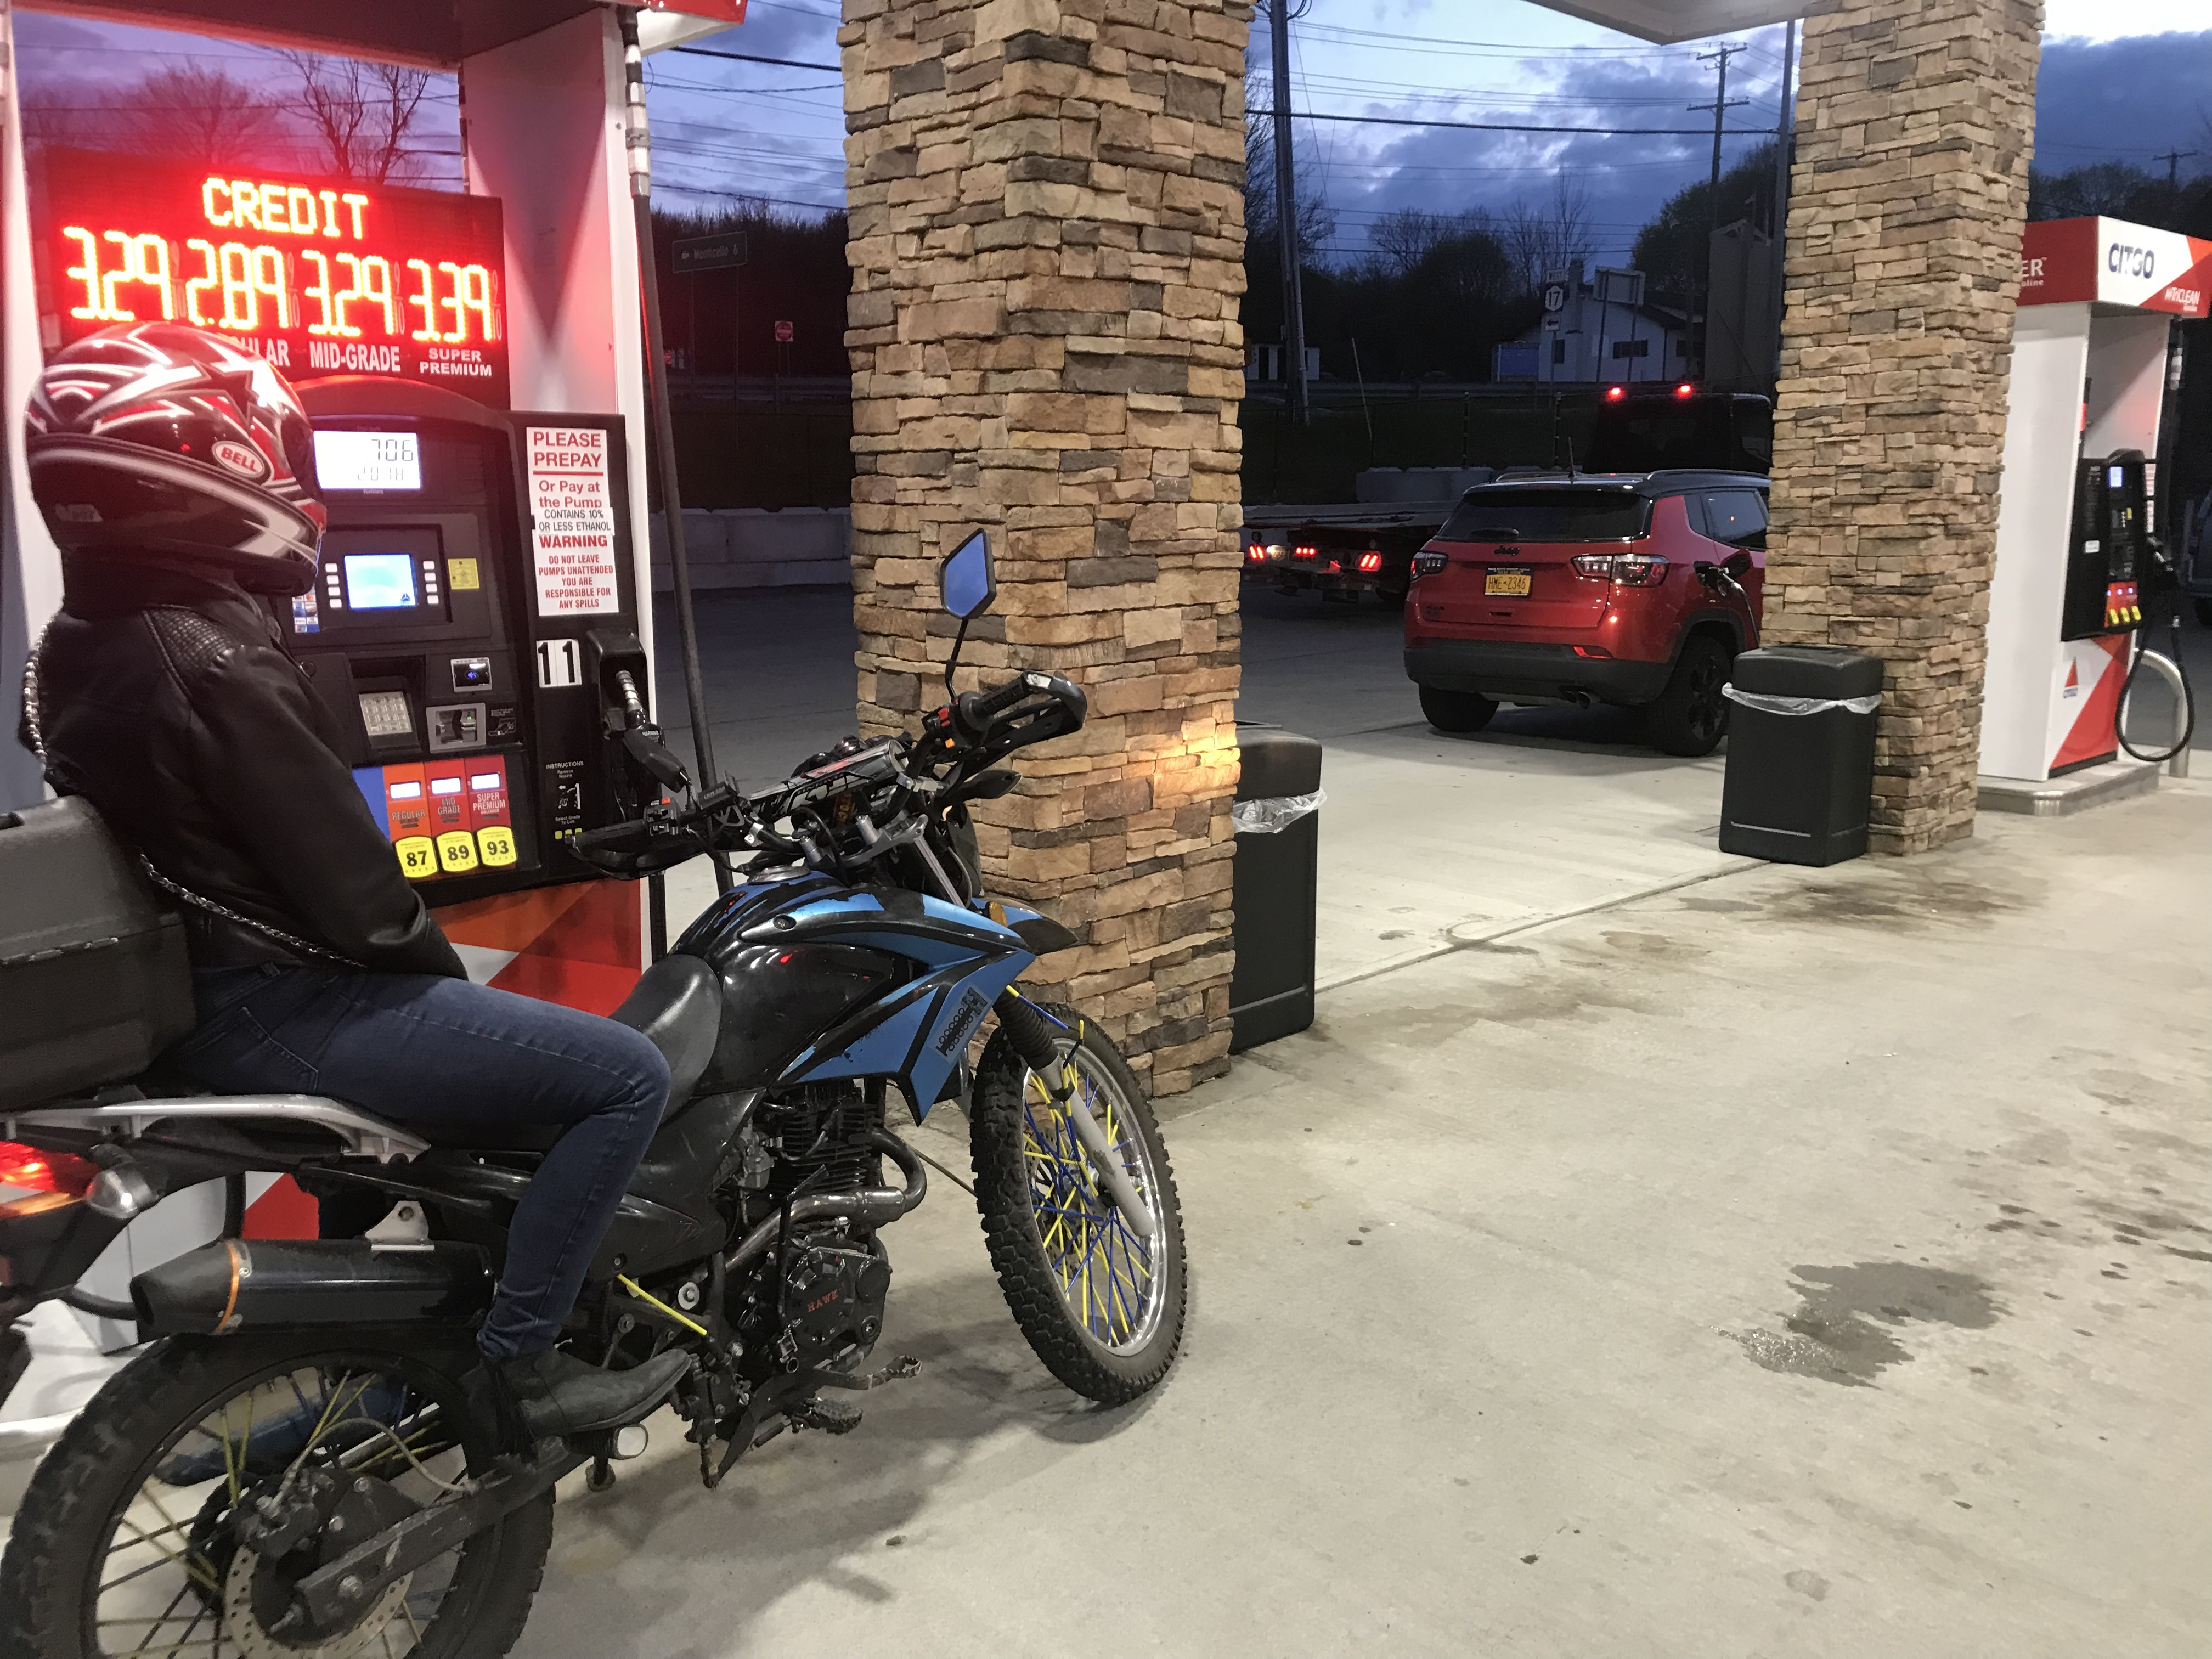 First Motorcycle Ride of 2019 with Girlfriend